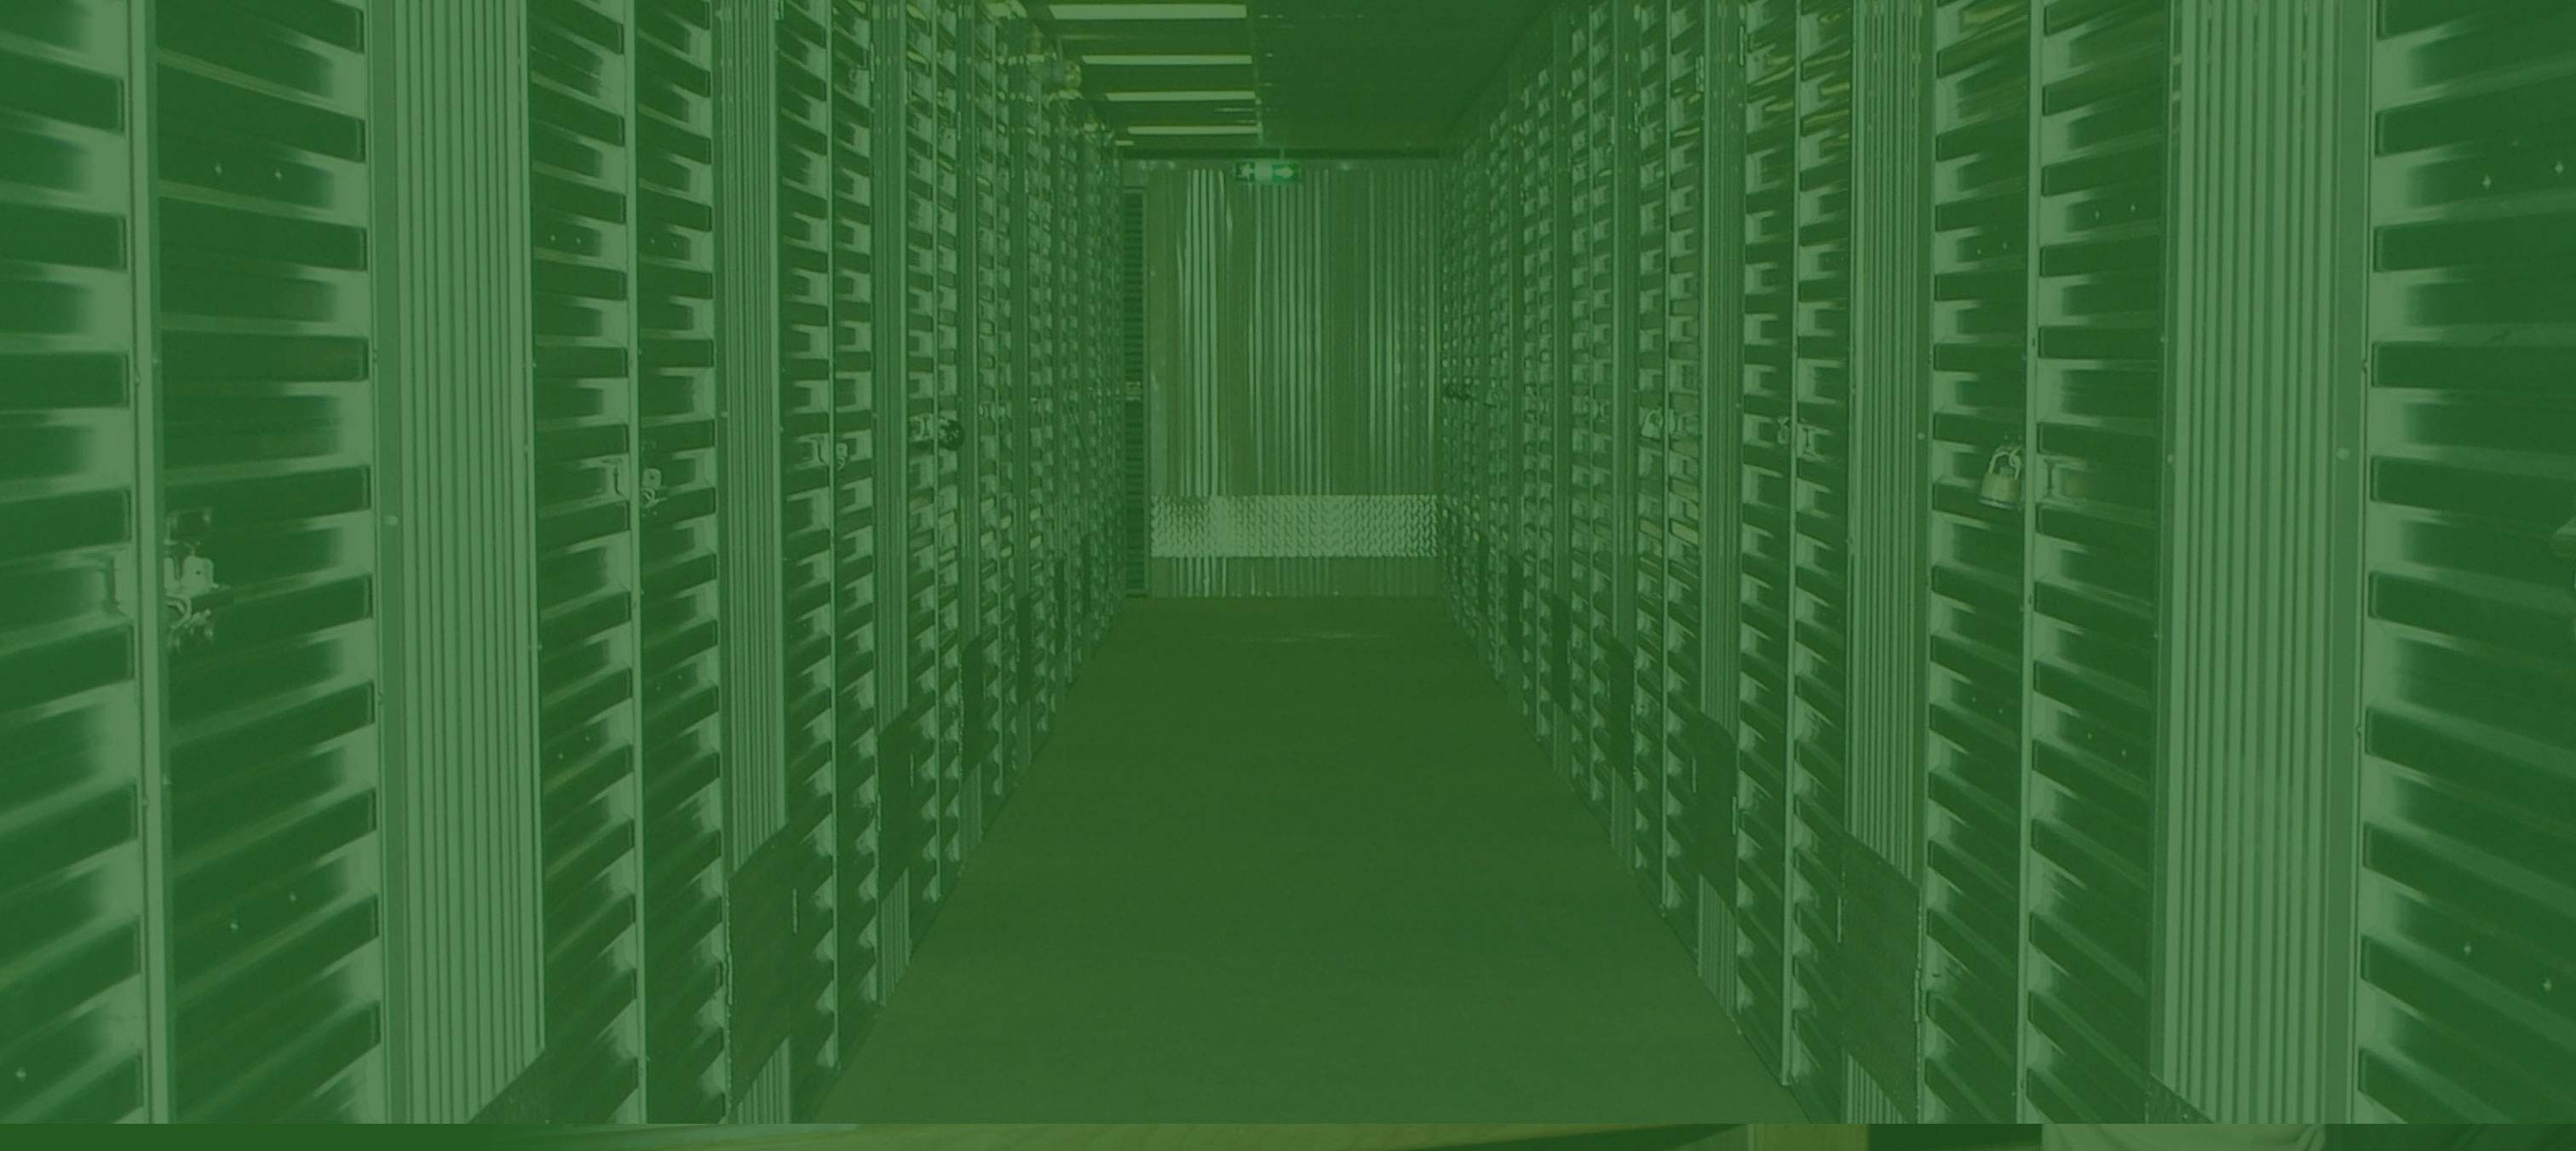 an image of storage units with a green hue for the banner